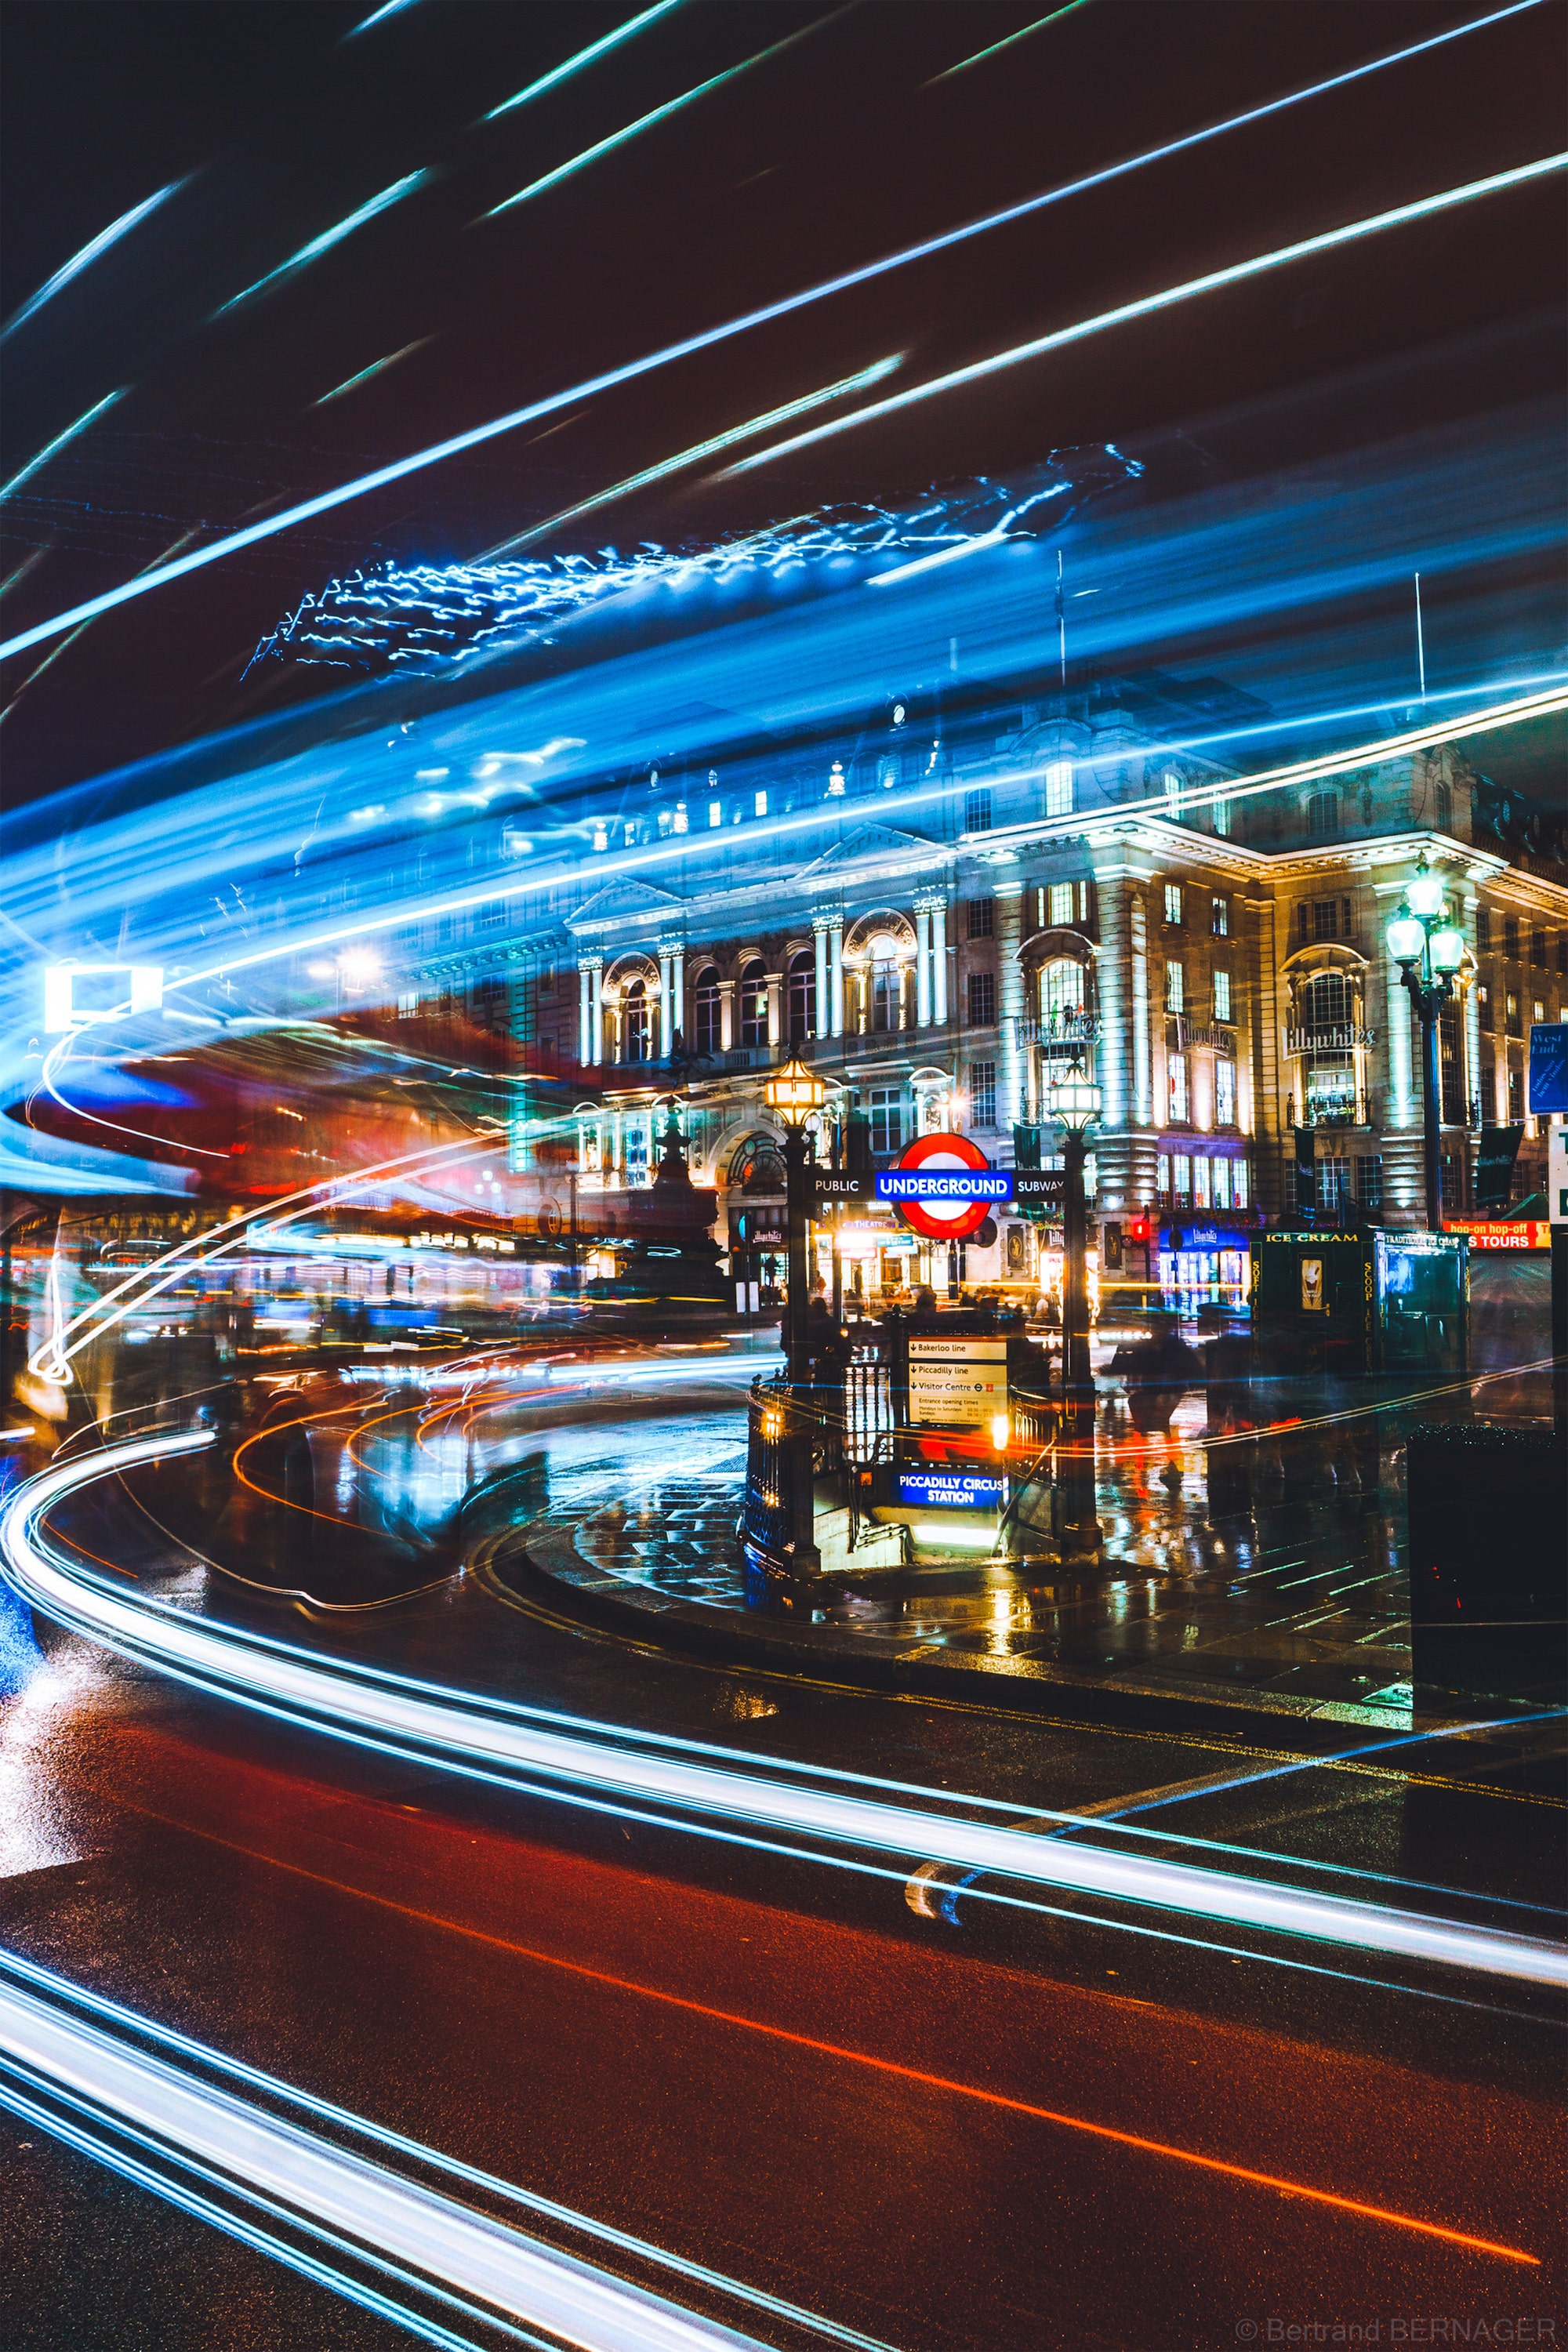 bertrand bernager sony alpha 6000 long exposure shot of cars and buses passing through piccadilly circus at night